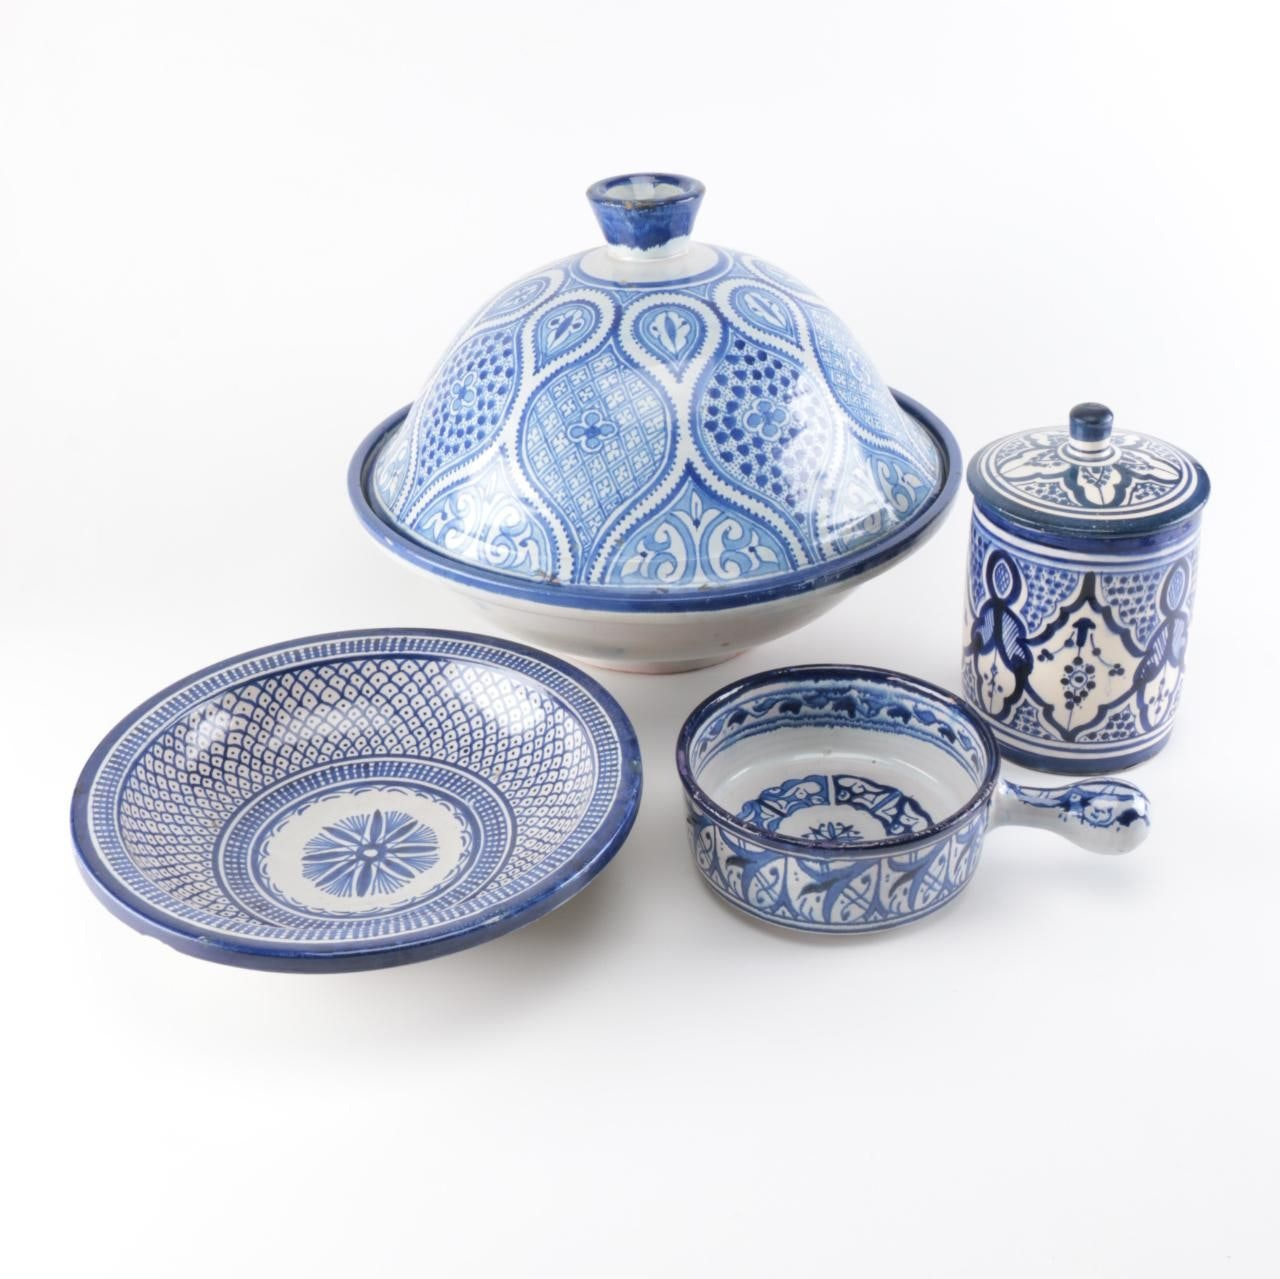 Blue and White Moroccan Tableware Set ...  sc 1 st  EBTH.com & Blue and White Moroccan Tableware Set : EBTH